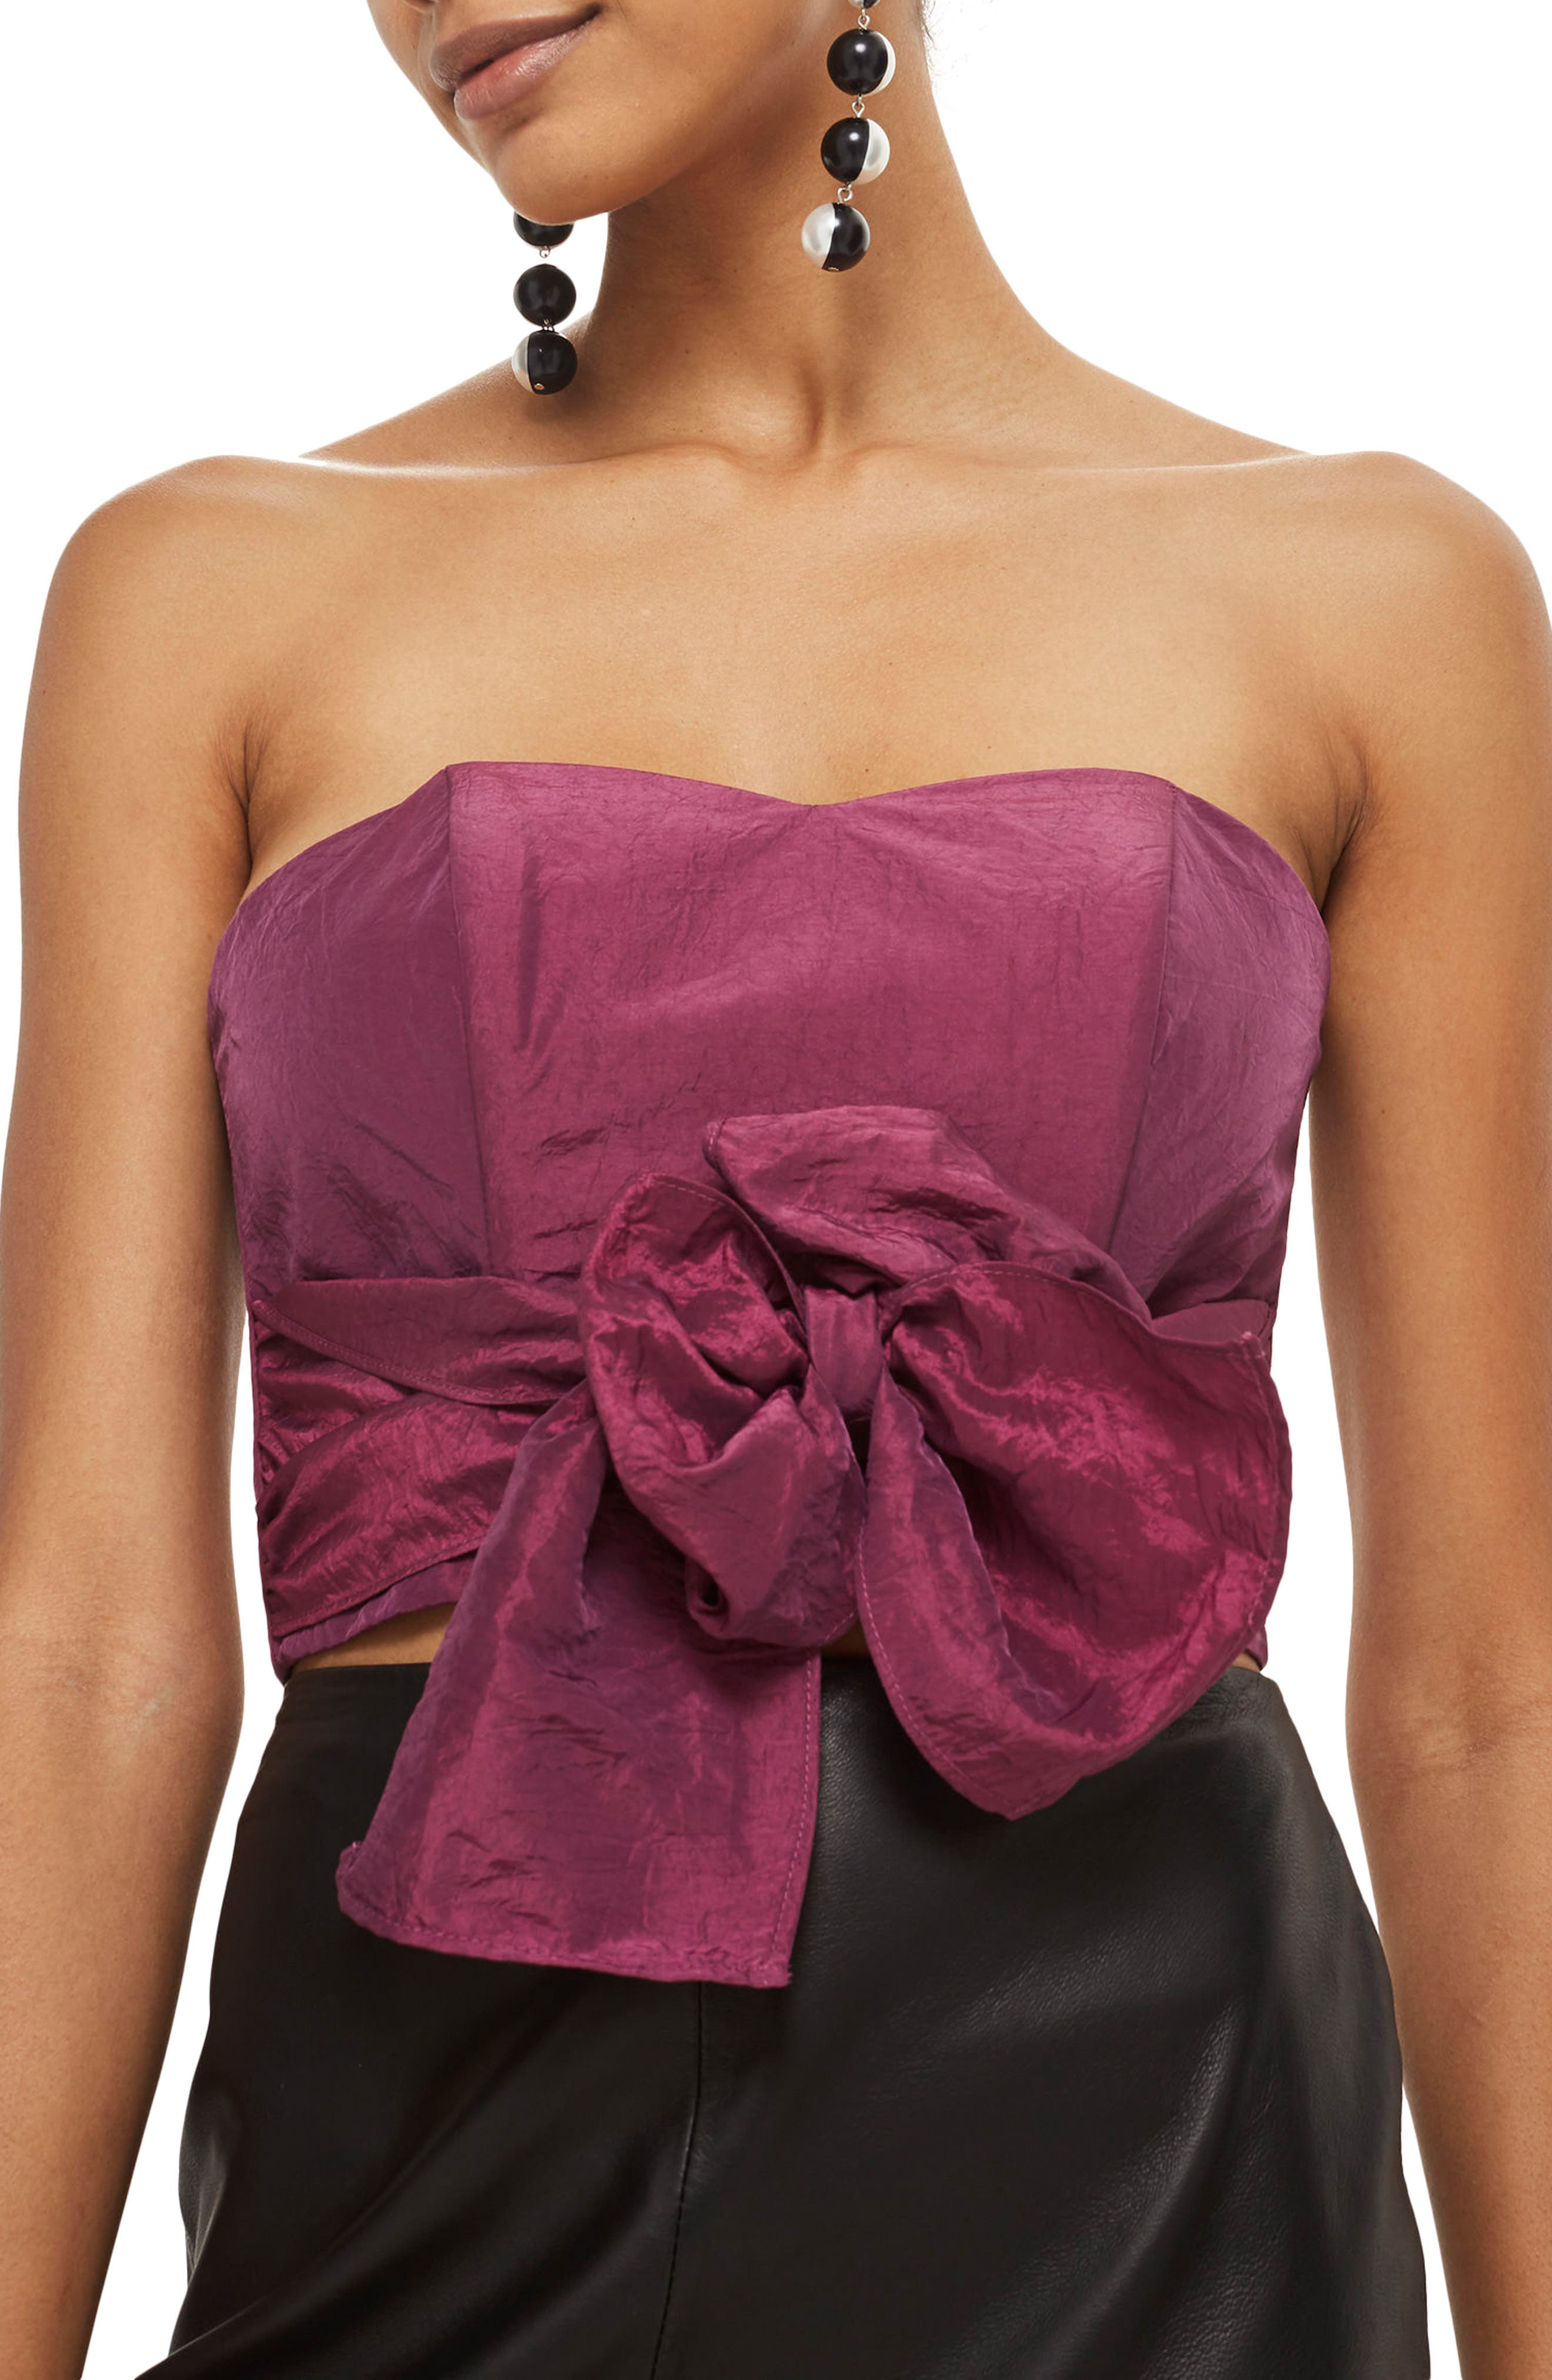 Taffeta Sweetheart Bandeau Tie Blouse,                         Main,                         color, 651